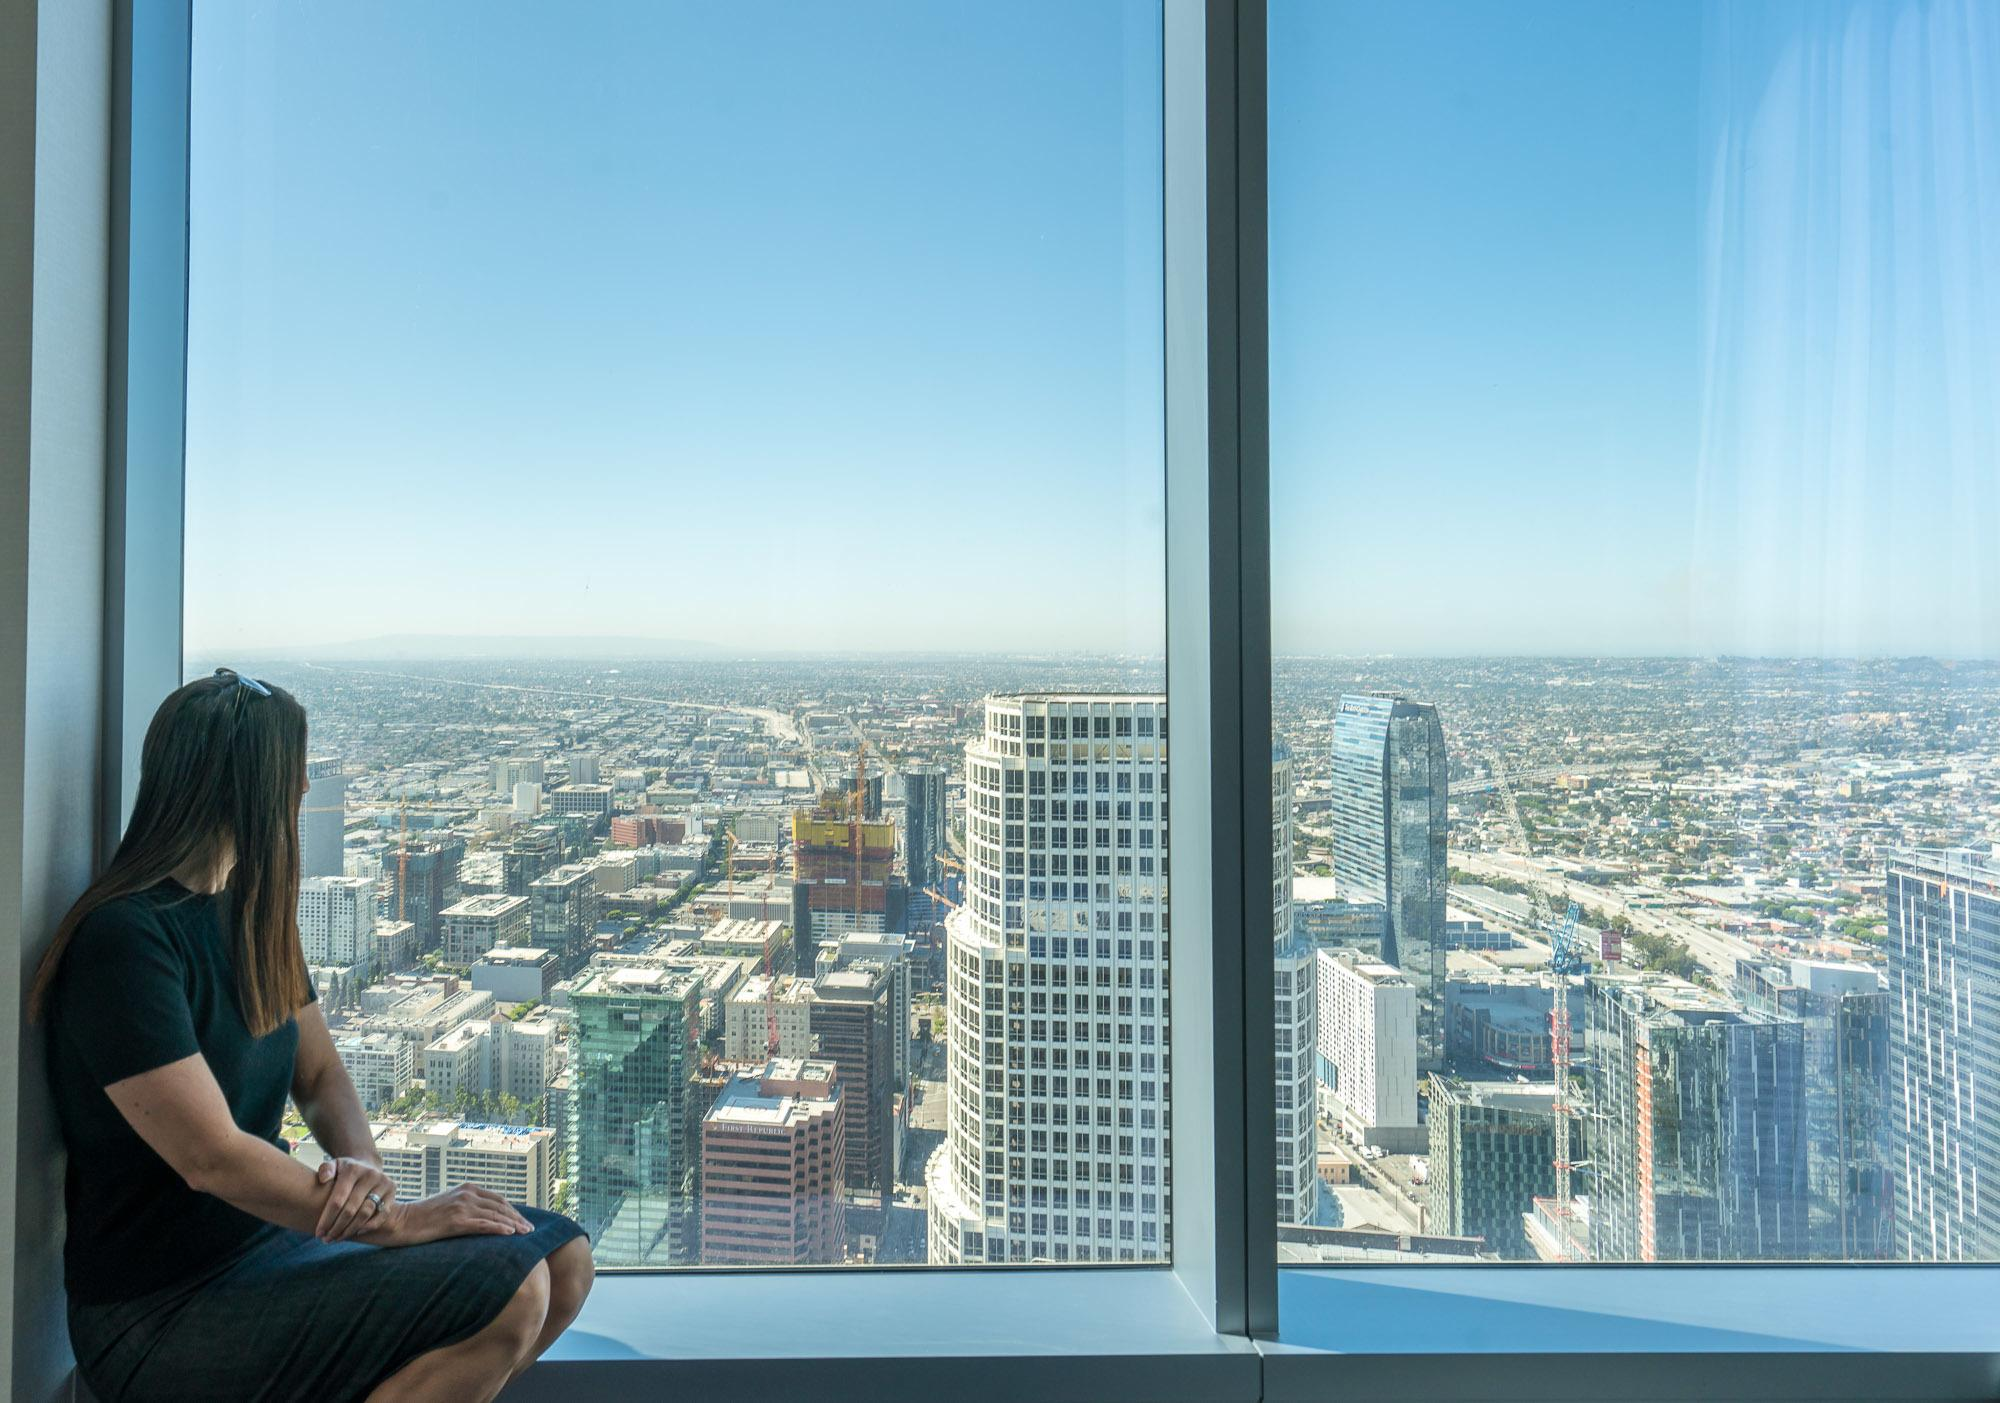 The views from InterContinental Los Angeles Downtown span for miles to the coast and beyond.